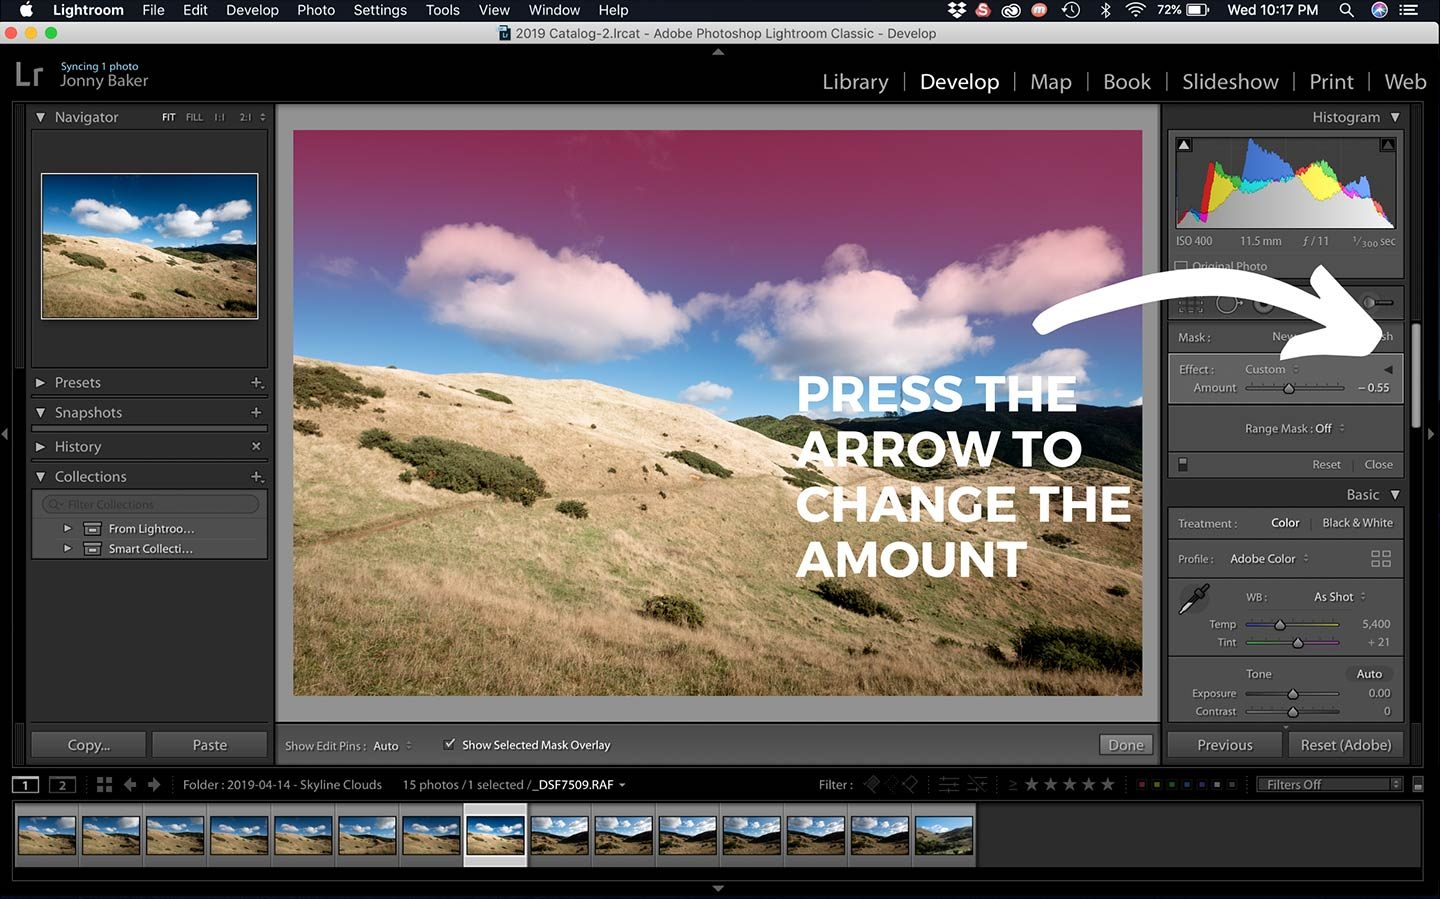 This screenshot of Lightroom shows how to change the amount of a filter adjustment which is very useful.